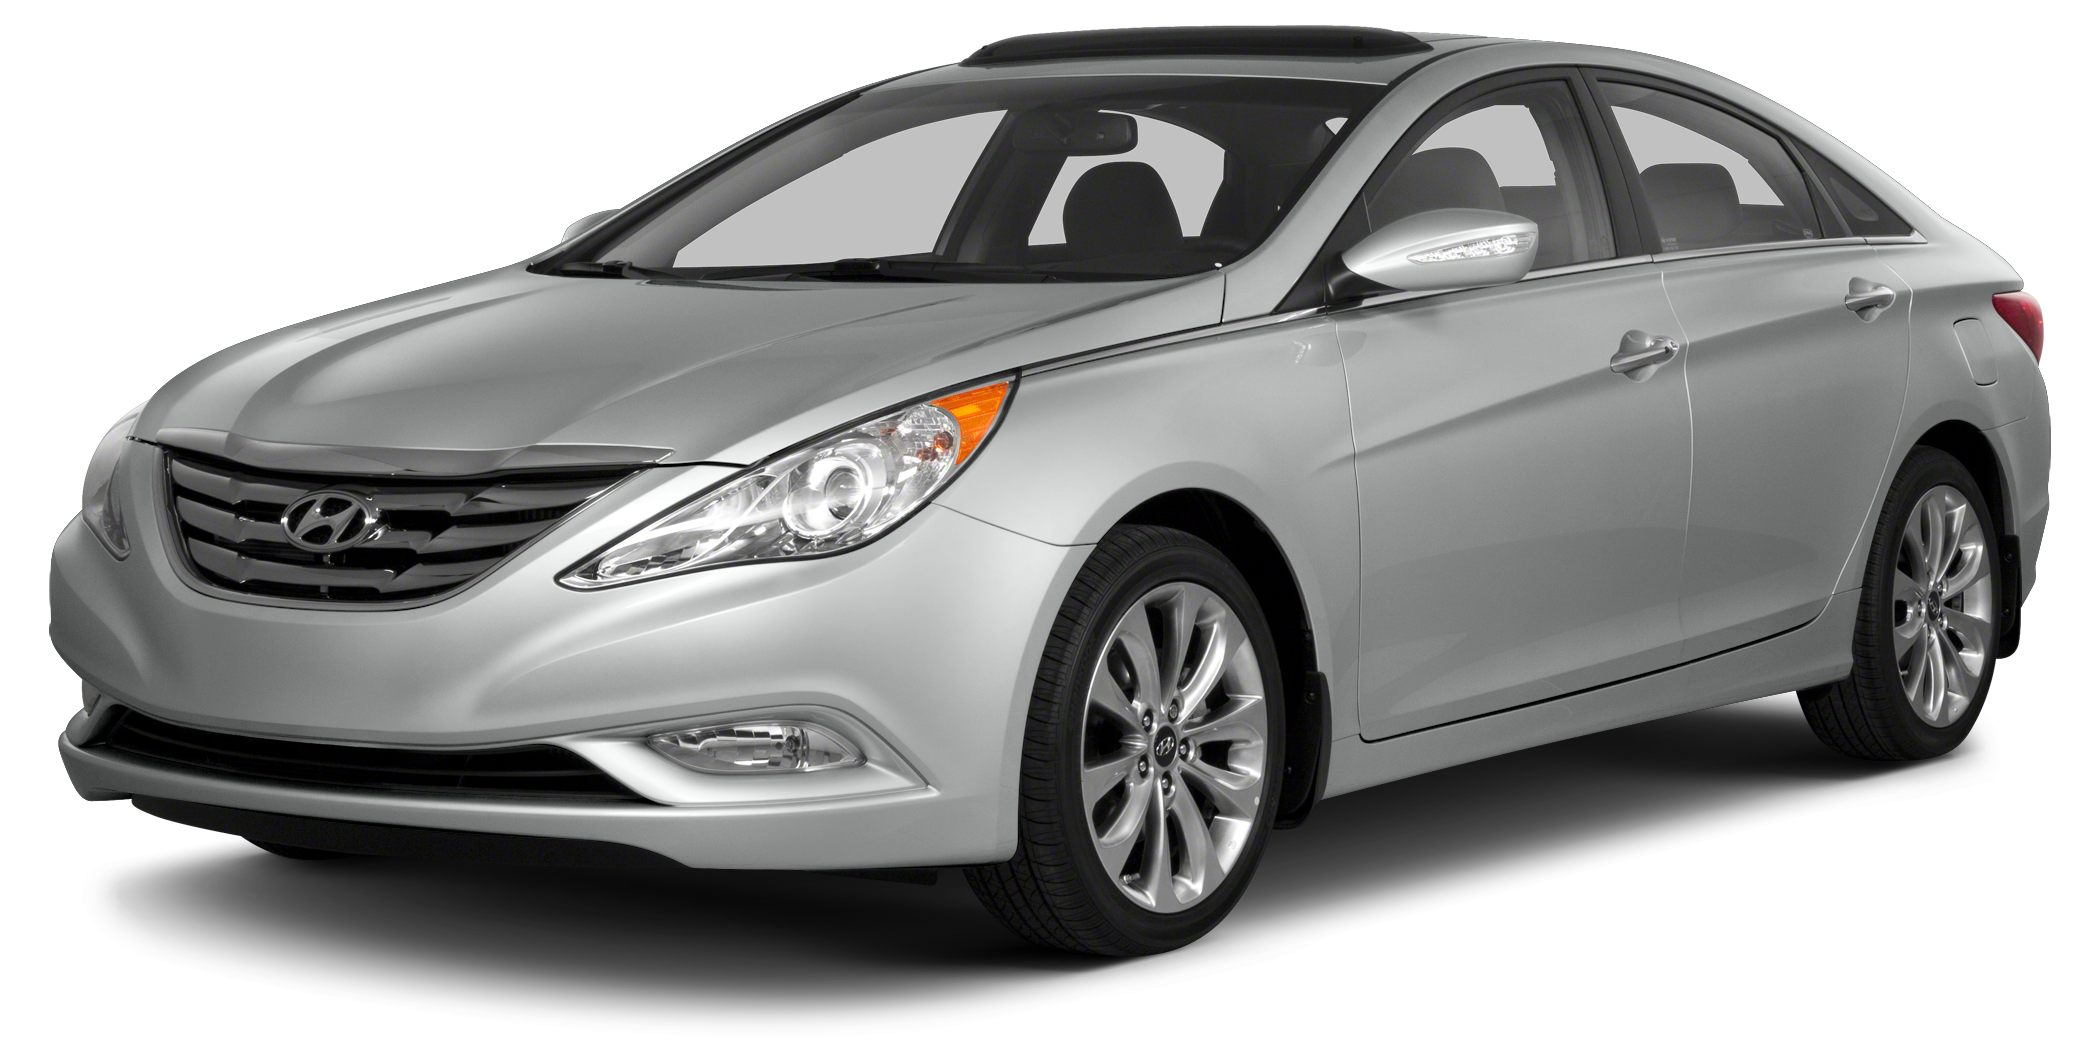 2013 Hyundai Sonata GLS Lifetime Engine Warranty at NO CHARGE on all pre-owned vehicles Courtesy A